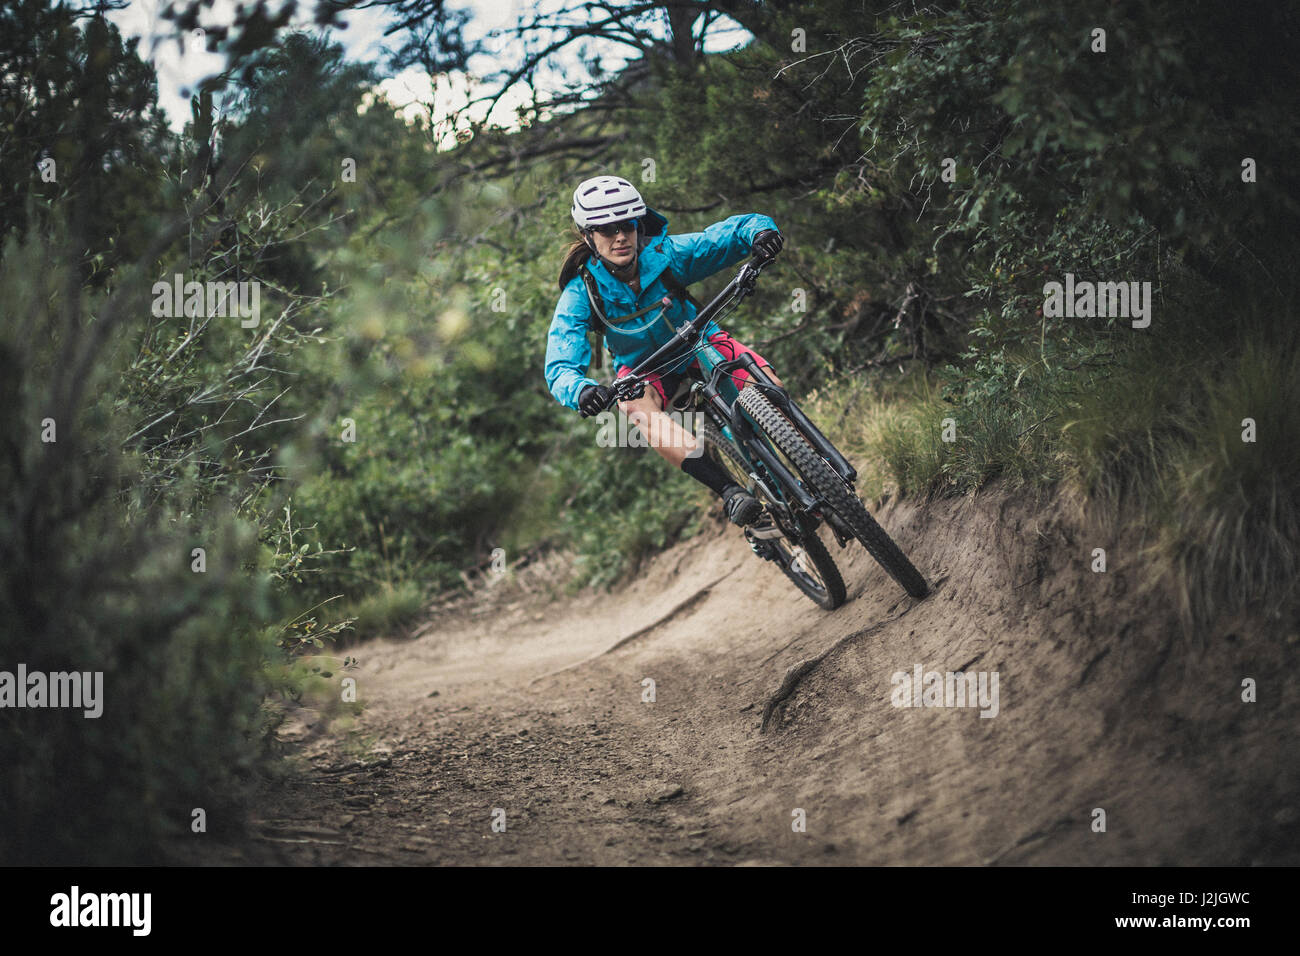 Nichole Baker mountain biking on the Meadow Loop trail, Horse Gulch area, Durango, CO. - Stock Image